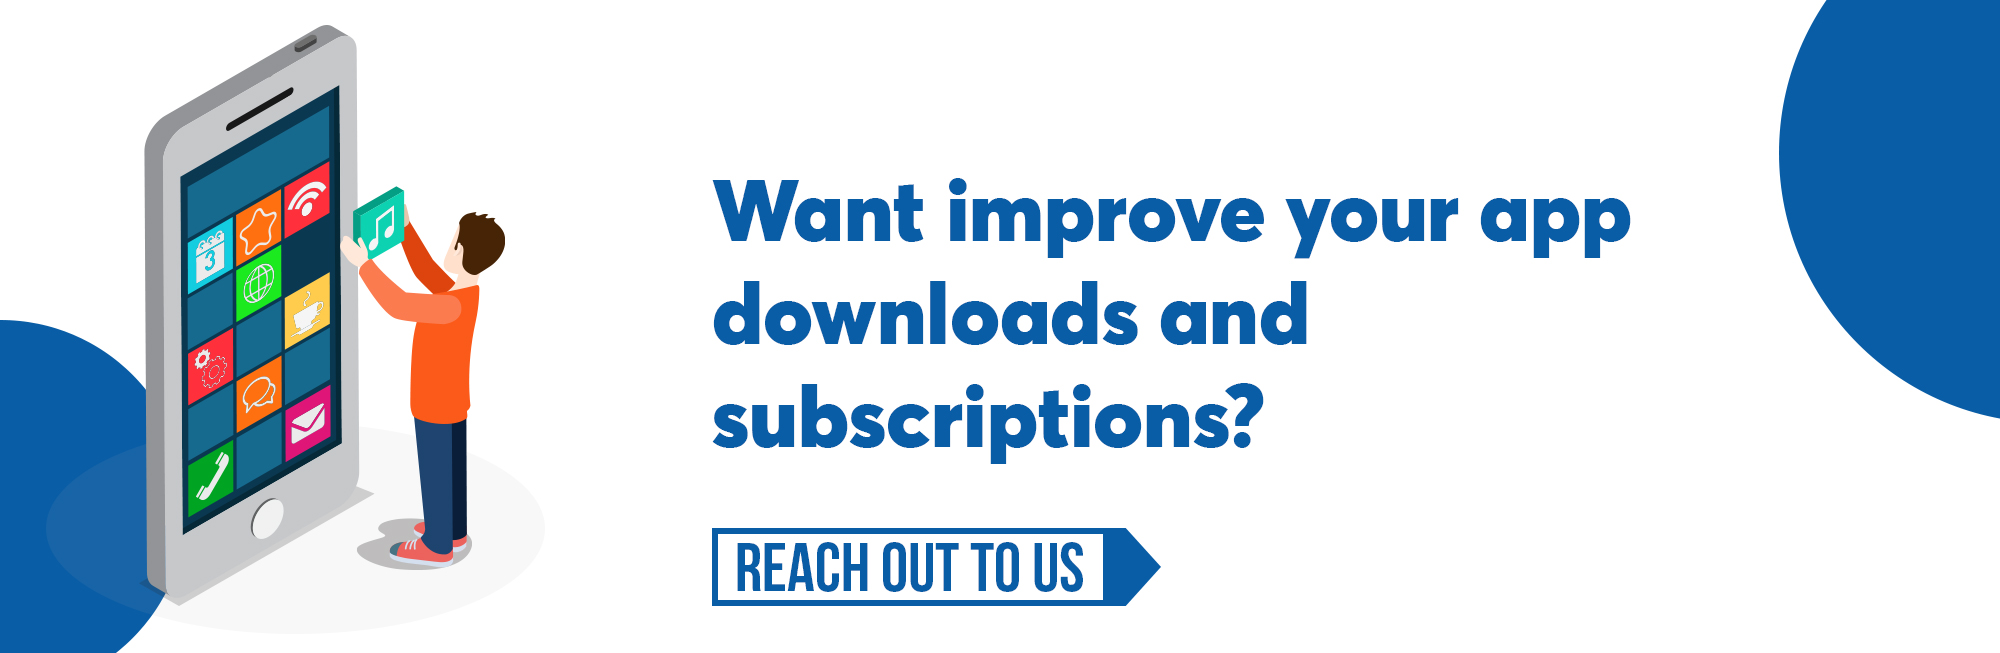 How-to-Increase-the-Number-of-App-Downloads-and-Subscriptions-CTA